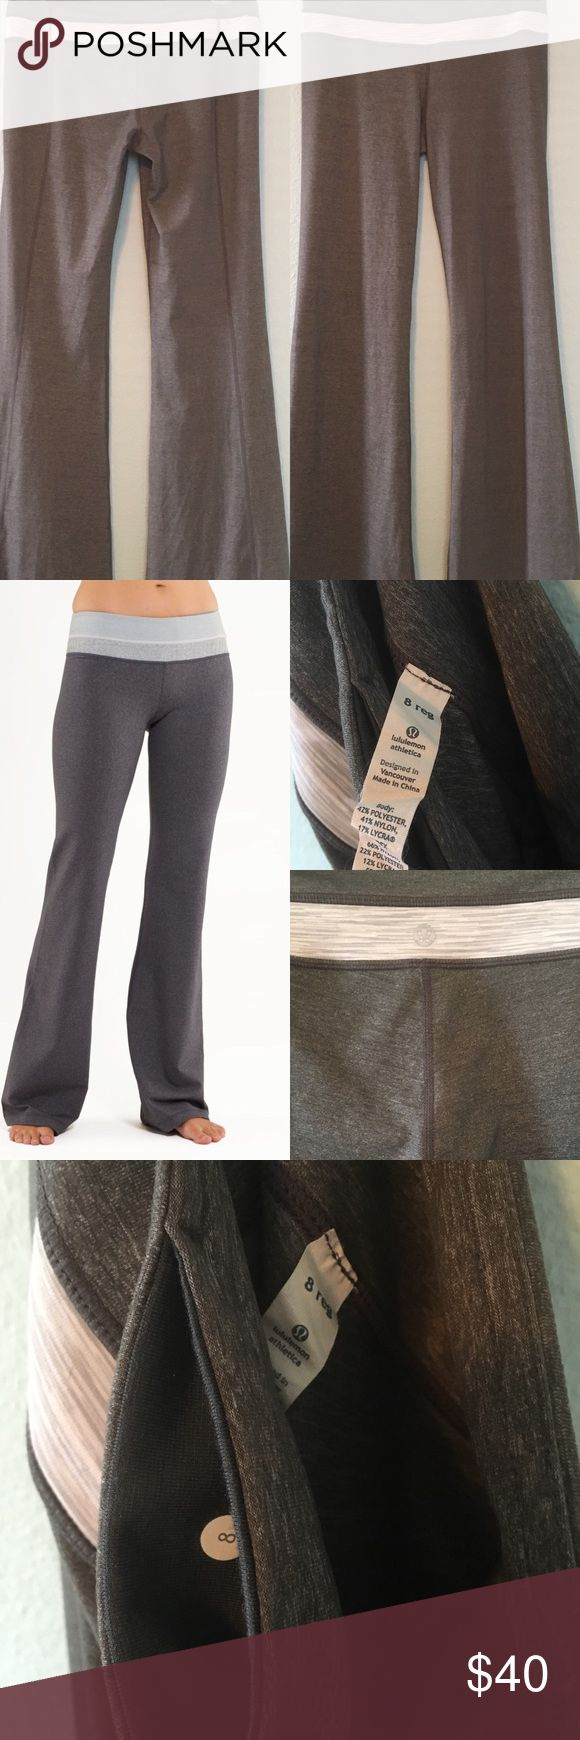 "NWOT Lululemon Groove Pant I'm a 10 took off the tags and tried them on once never wore them. Washed and then hung dried.  fabric(s): luon® properties: moisture wicking, preshrunk, chafe resistant, breathable, four-way stretch rise: low leg fit: flare inseam: 31 1/2"" hem sweep: 20 1/2"" lululemon athletica Pants"